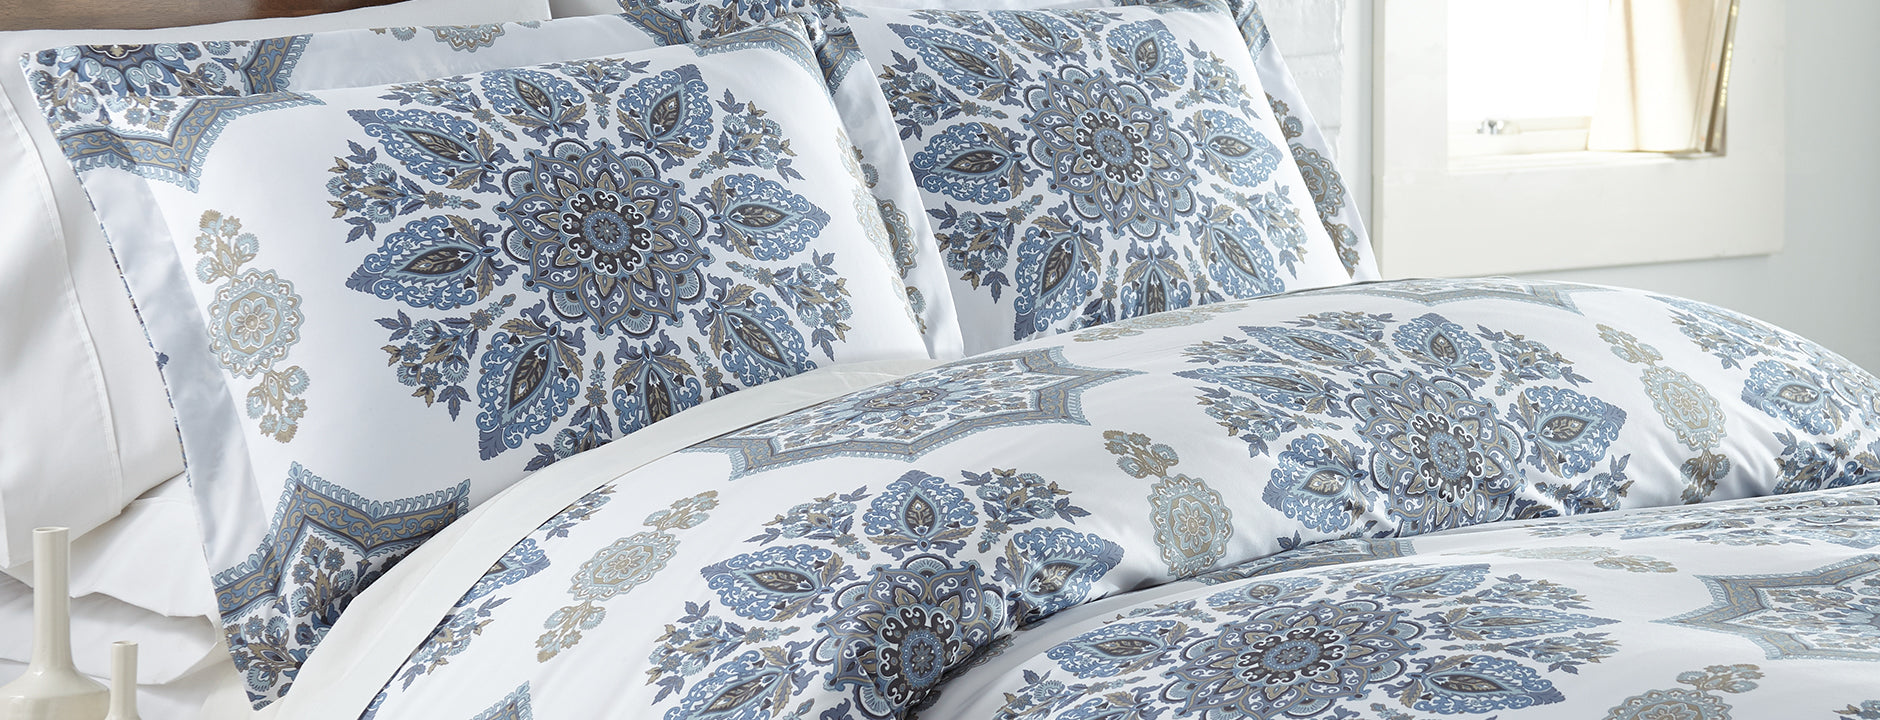 Bargain Bedding USA